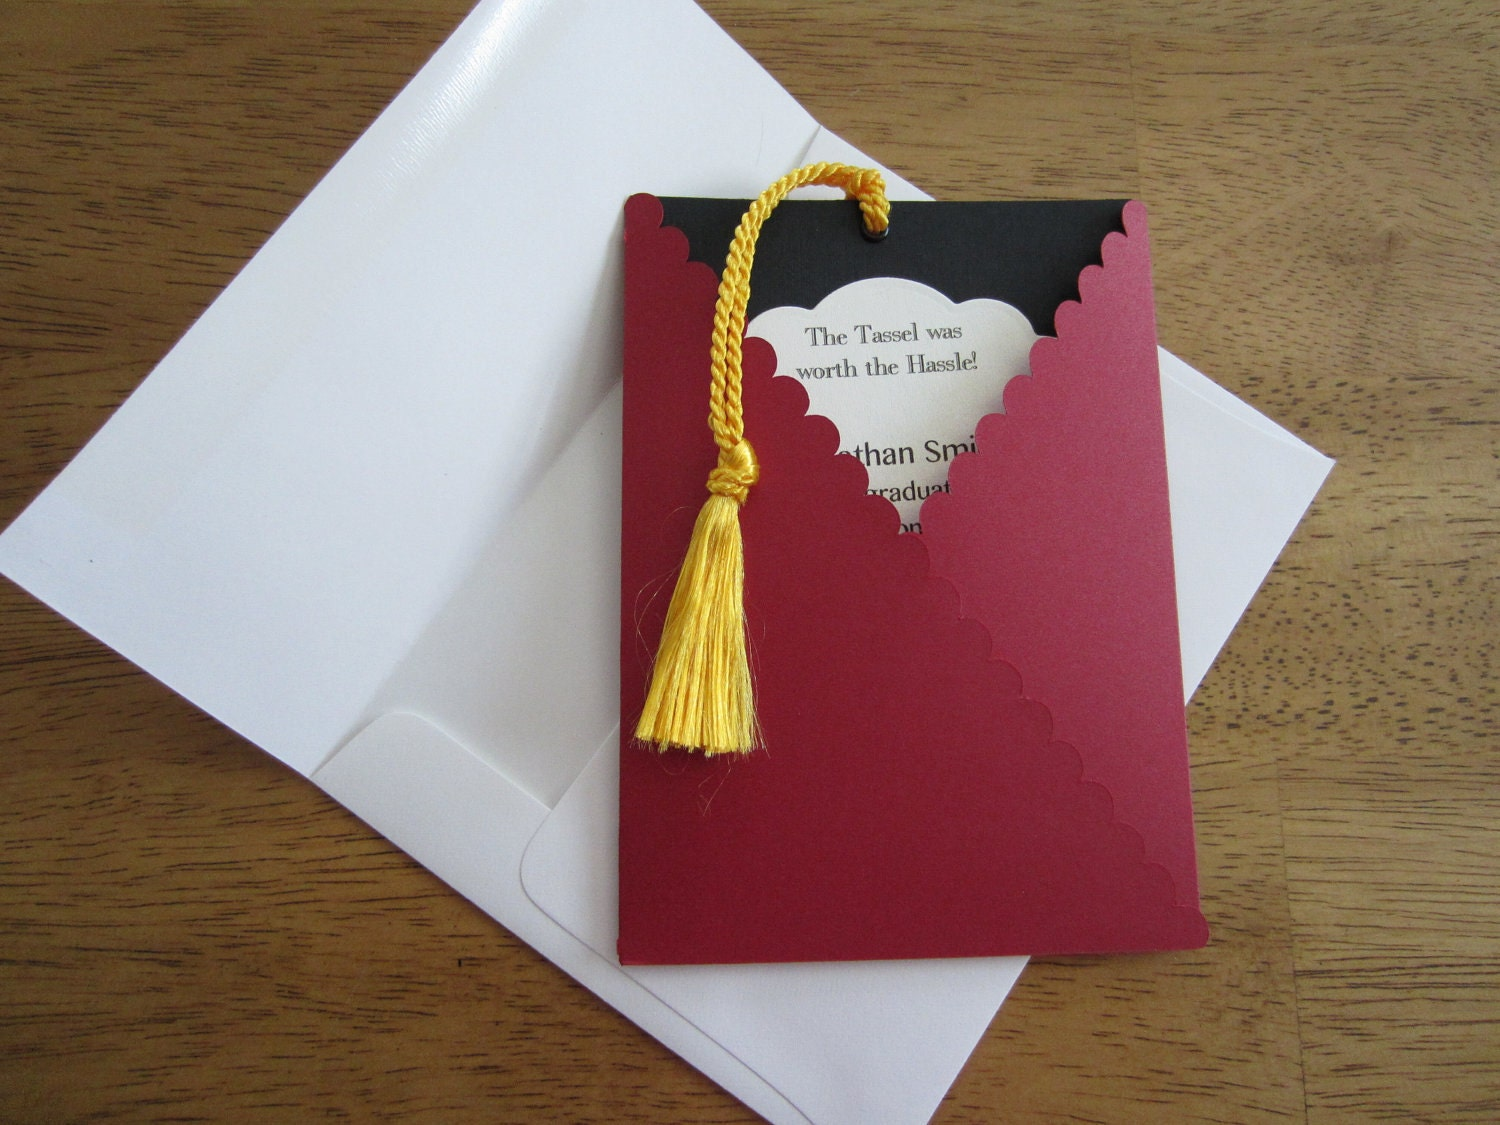 Homemade Graduation Invitations is an amazing ideas you had to choose for invitation design